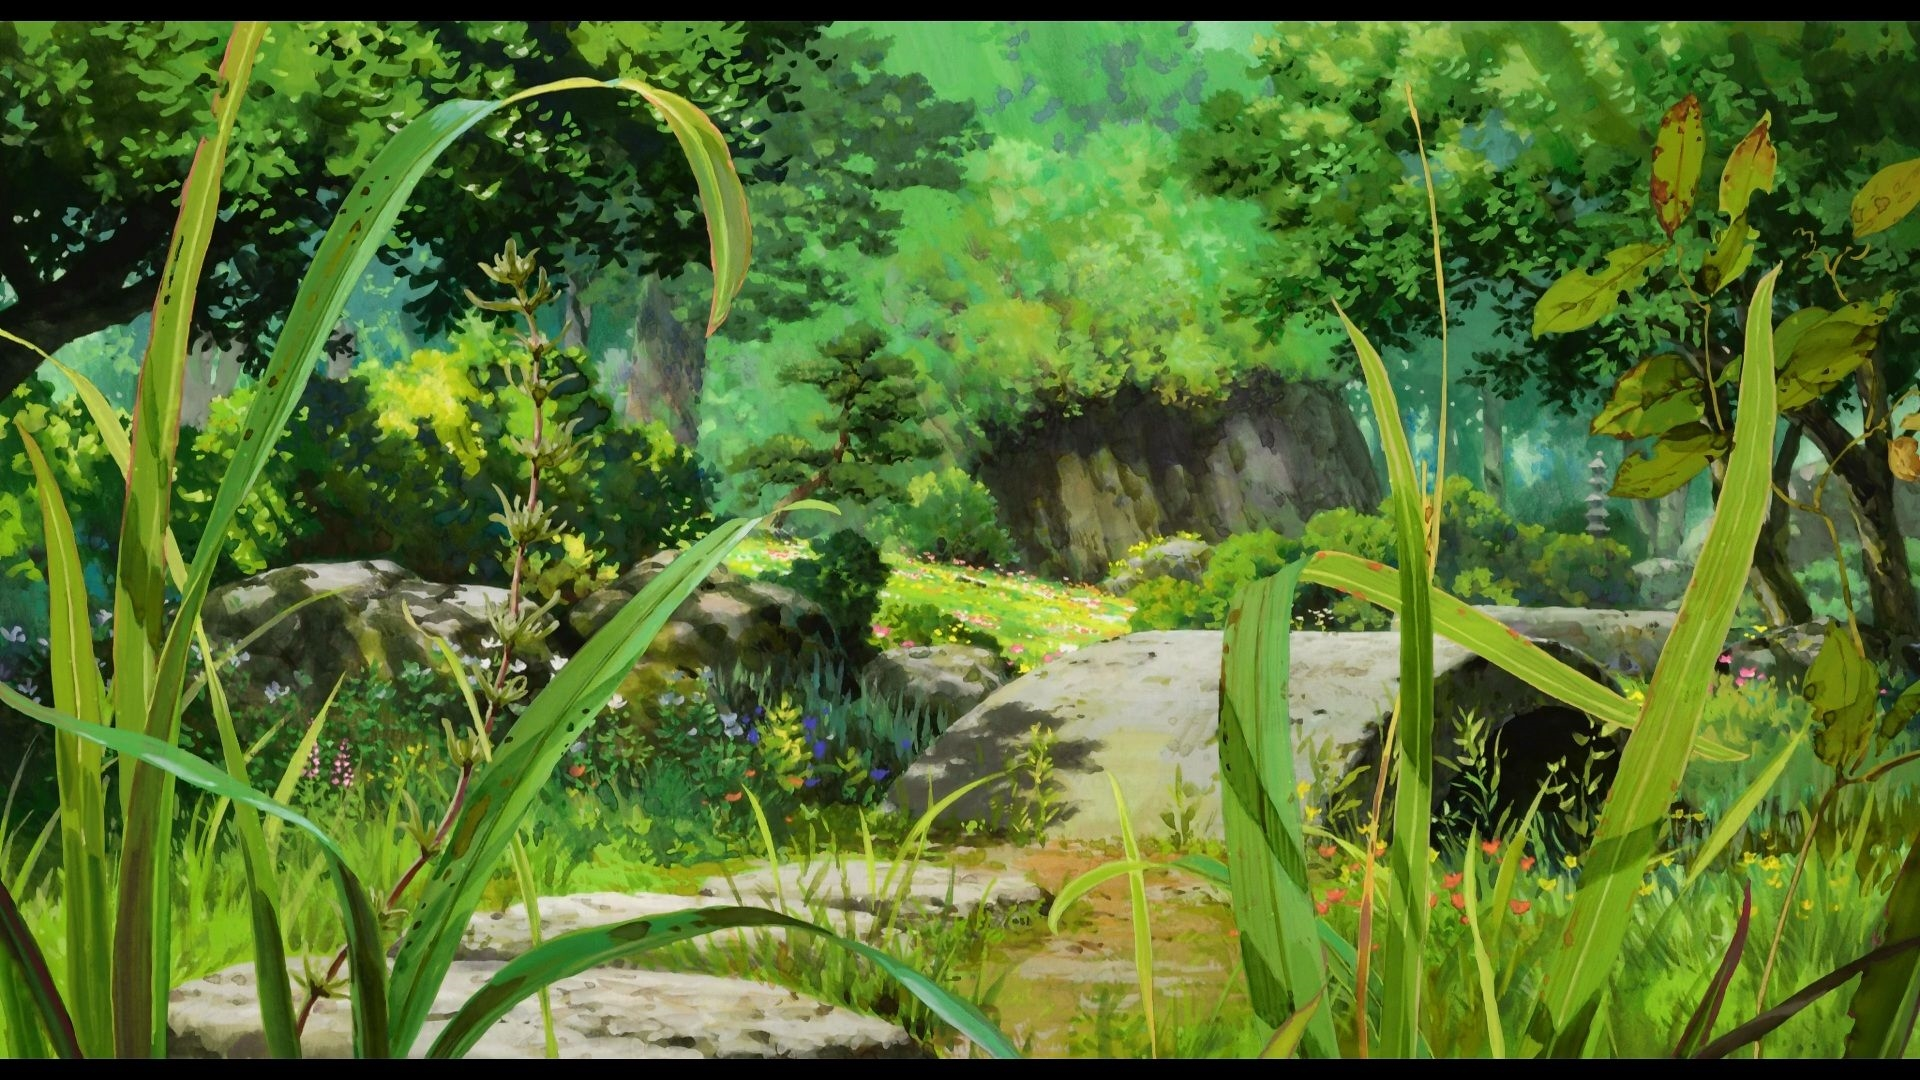 Anime Forest download free wallpaper for pc in hd